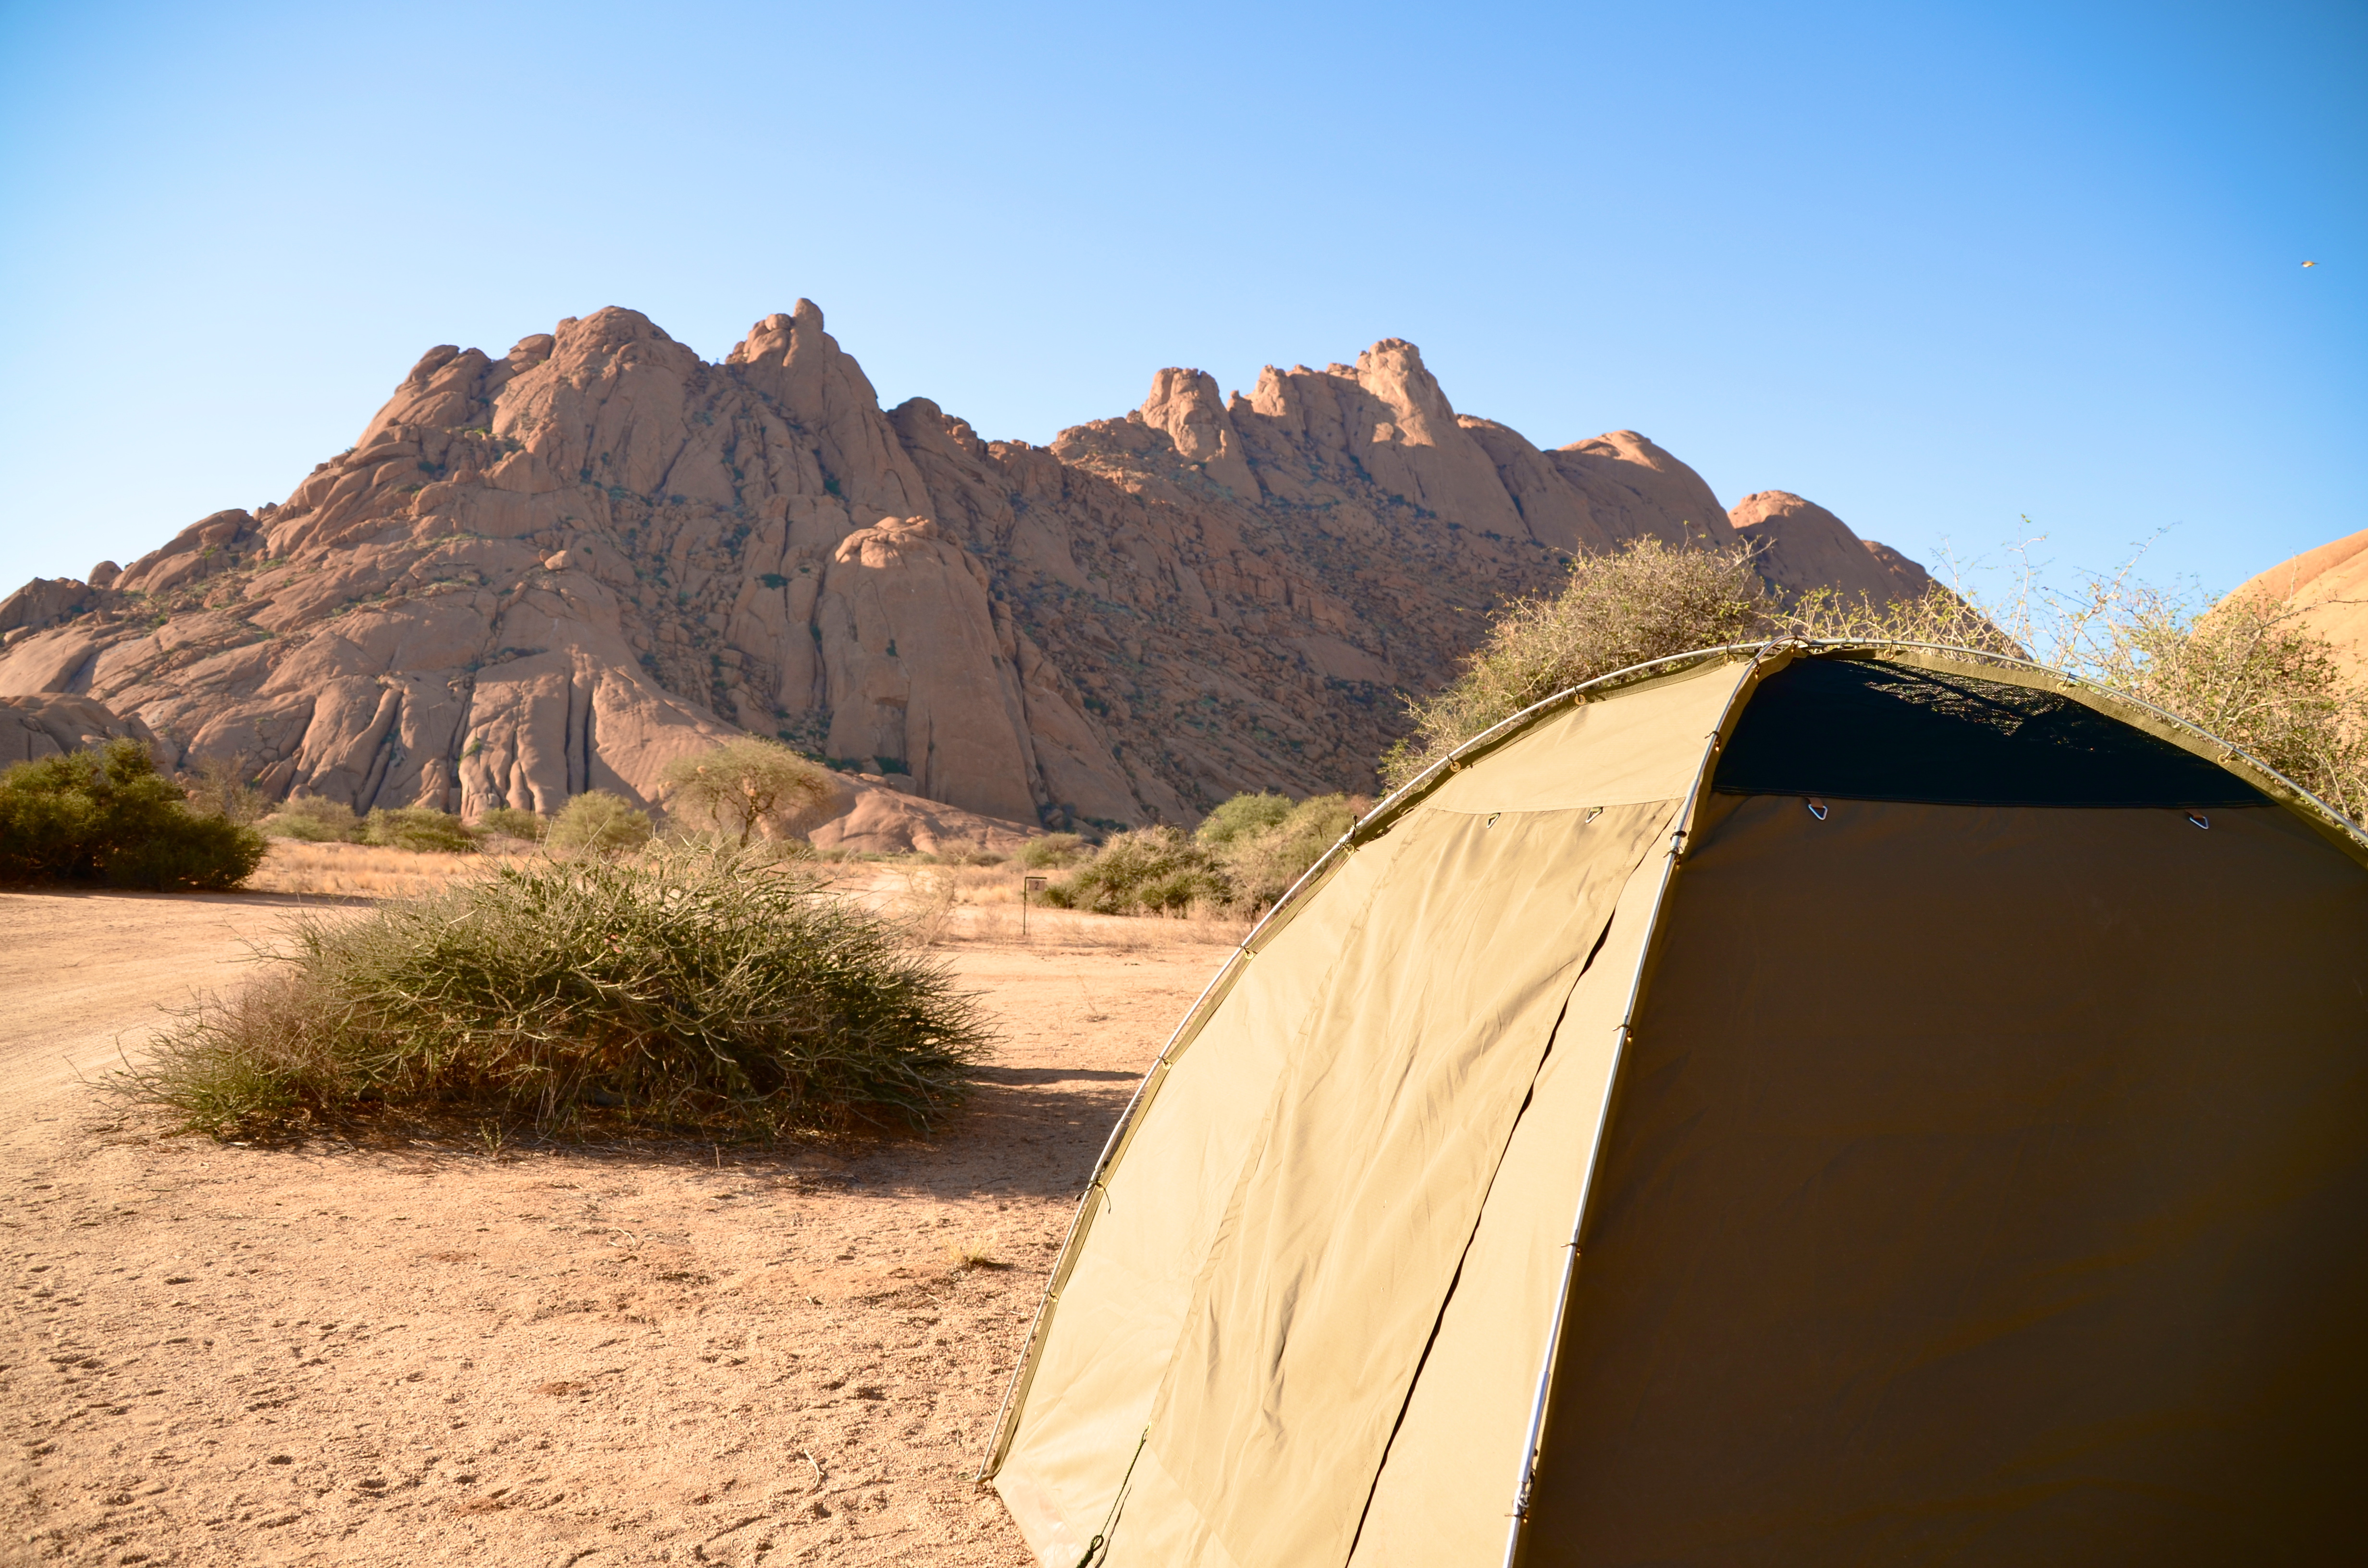 NAMIBIA 2. WEEK – SKYDIVING AND TALENT SHOW IN THE DESSERT